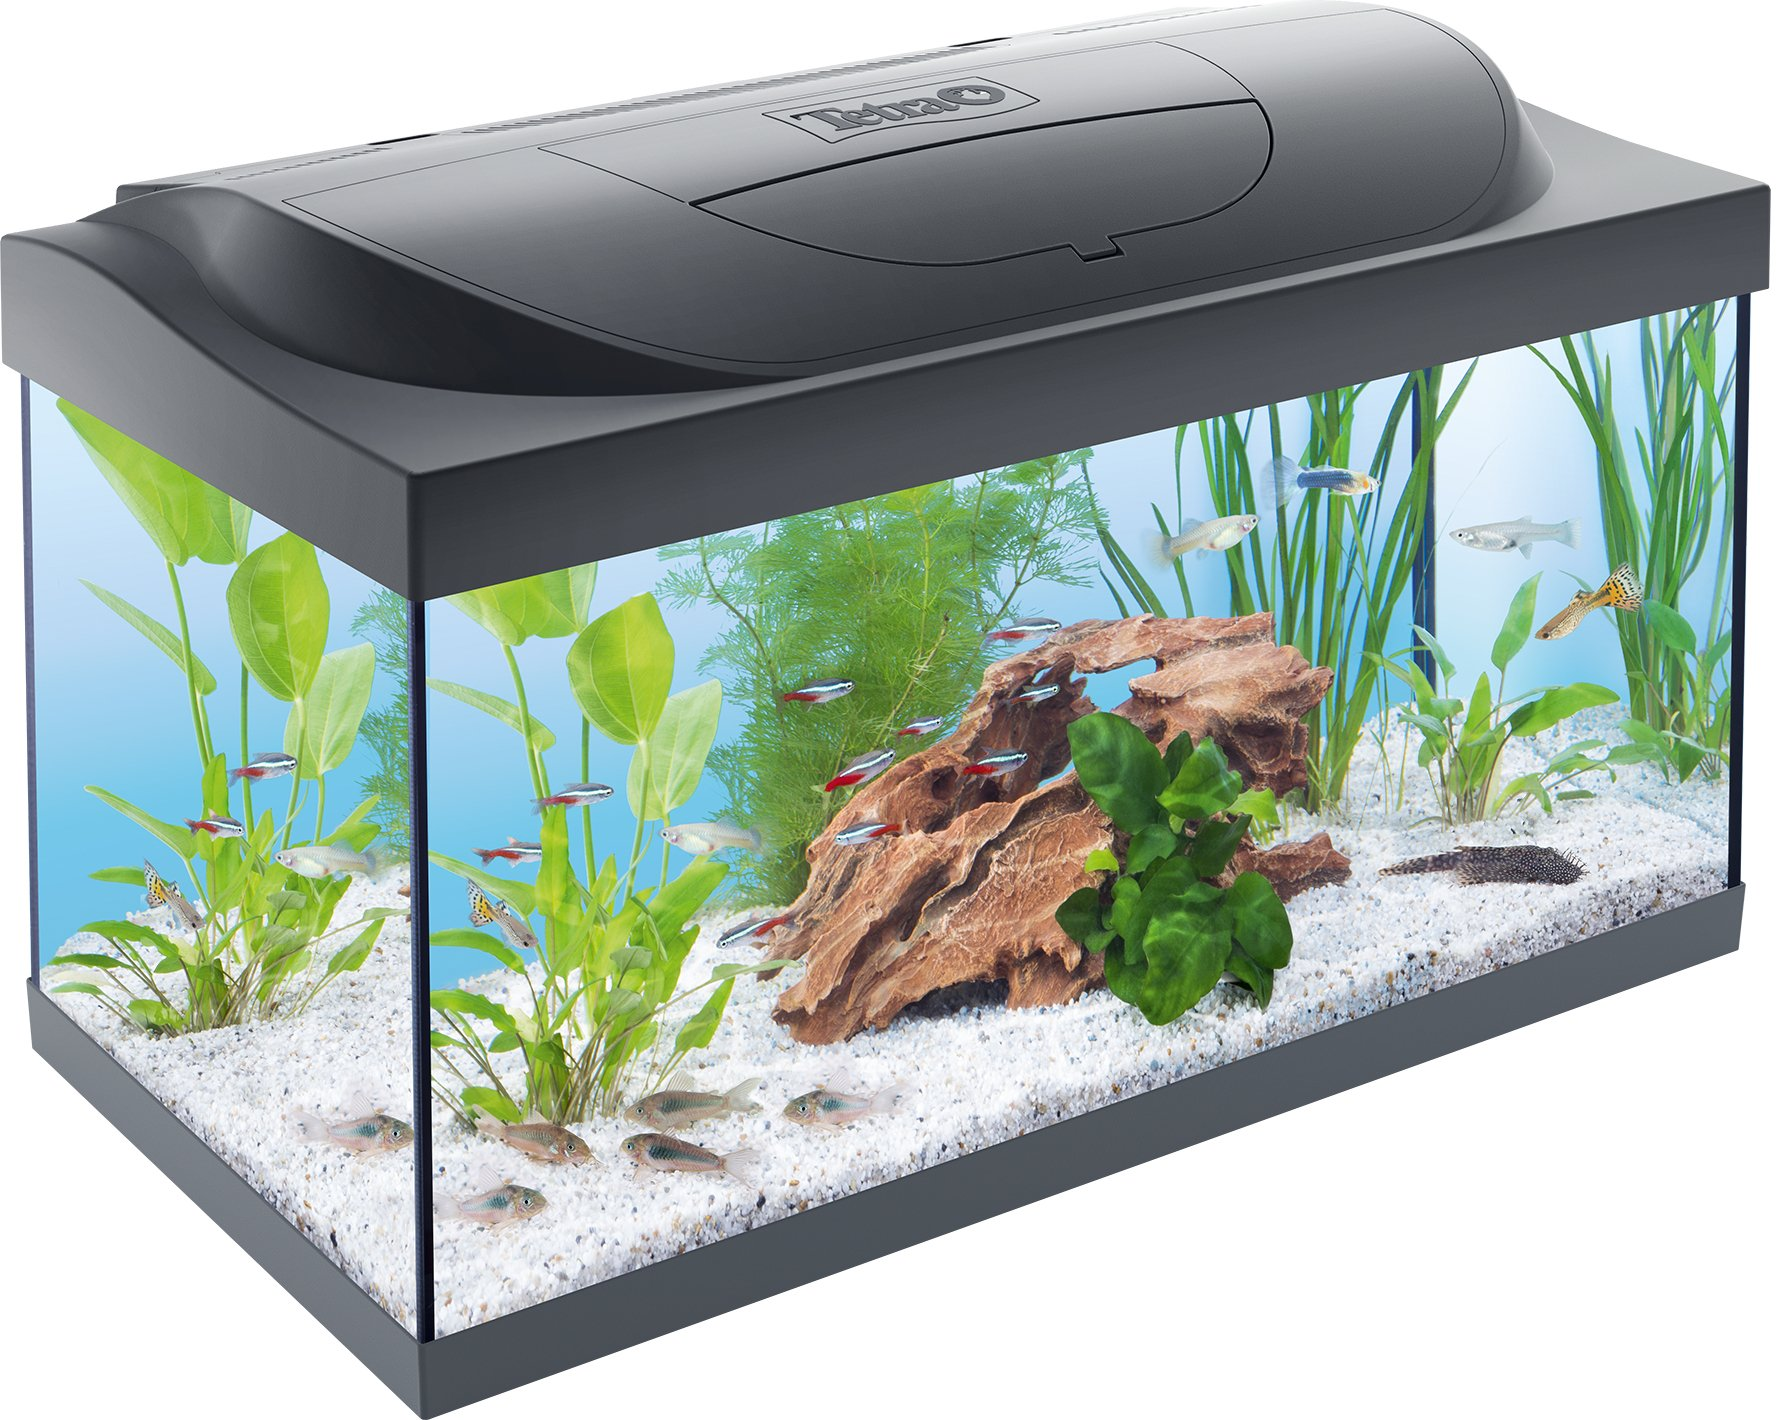 Tetra Starter Line Led aquarium kopen?   aquarium experts nl   Frank